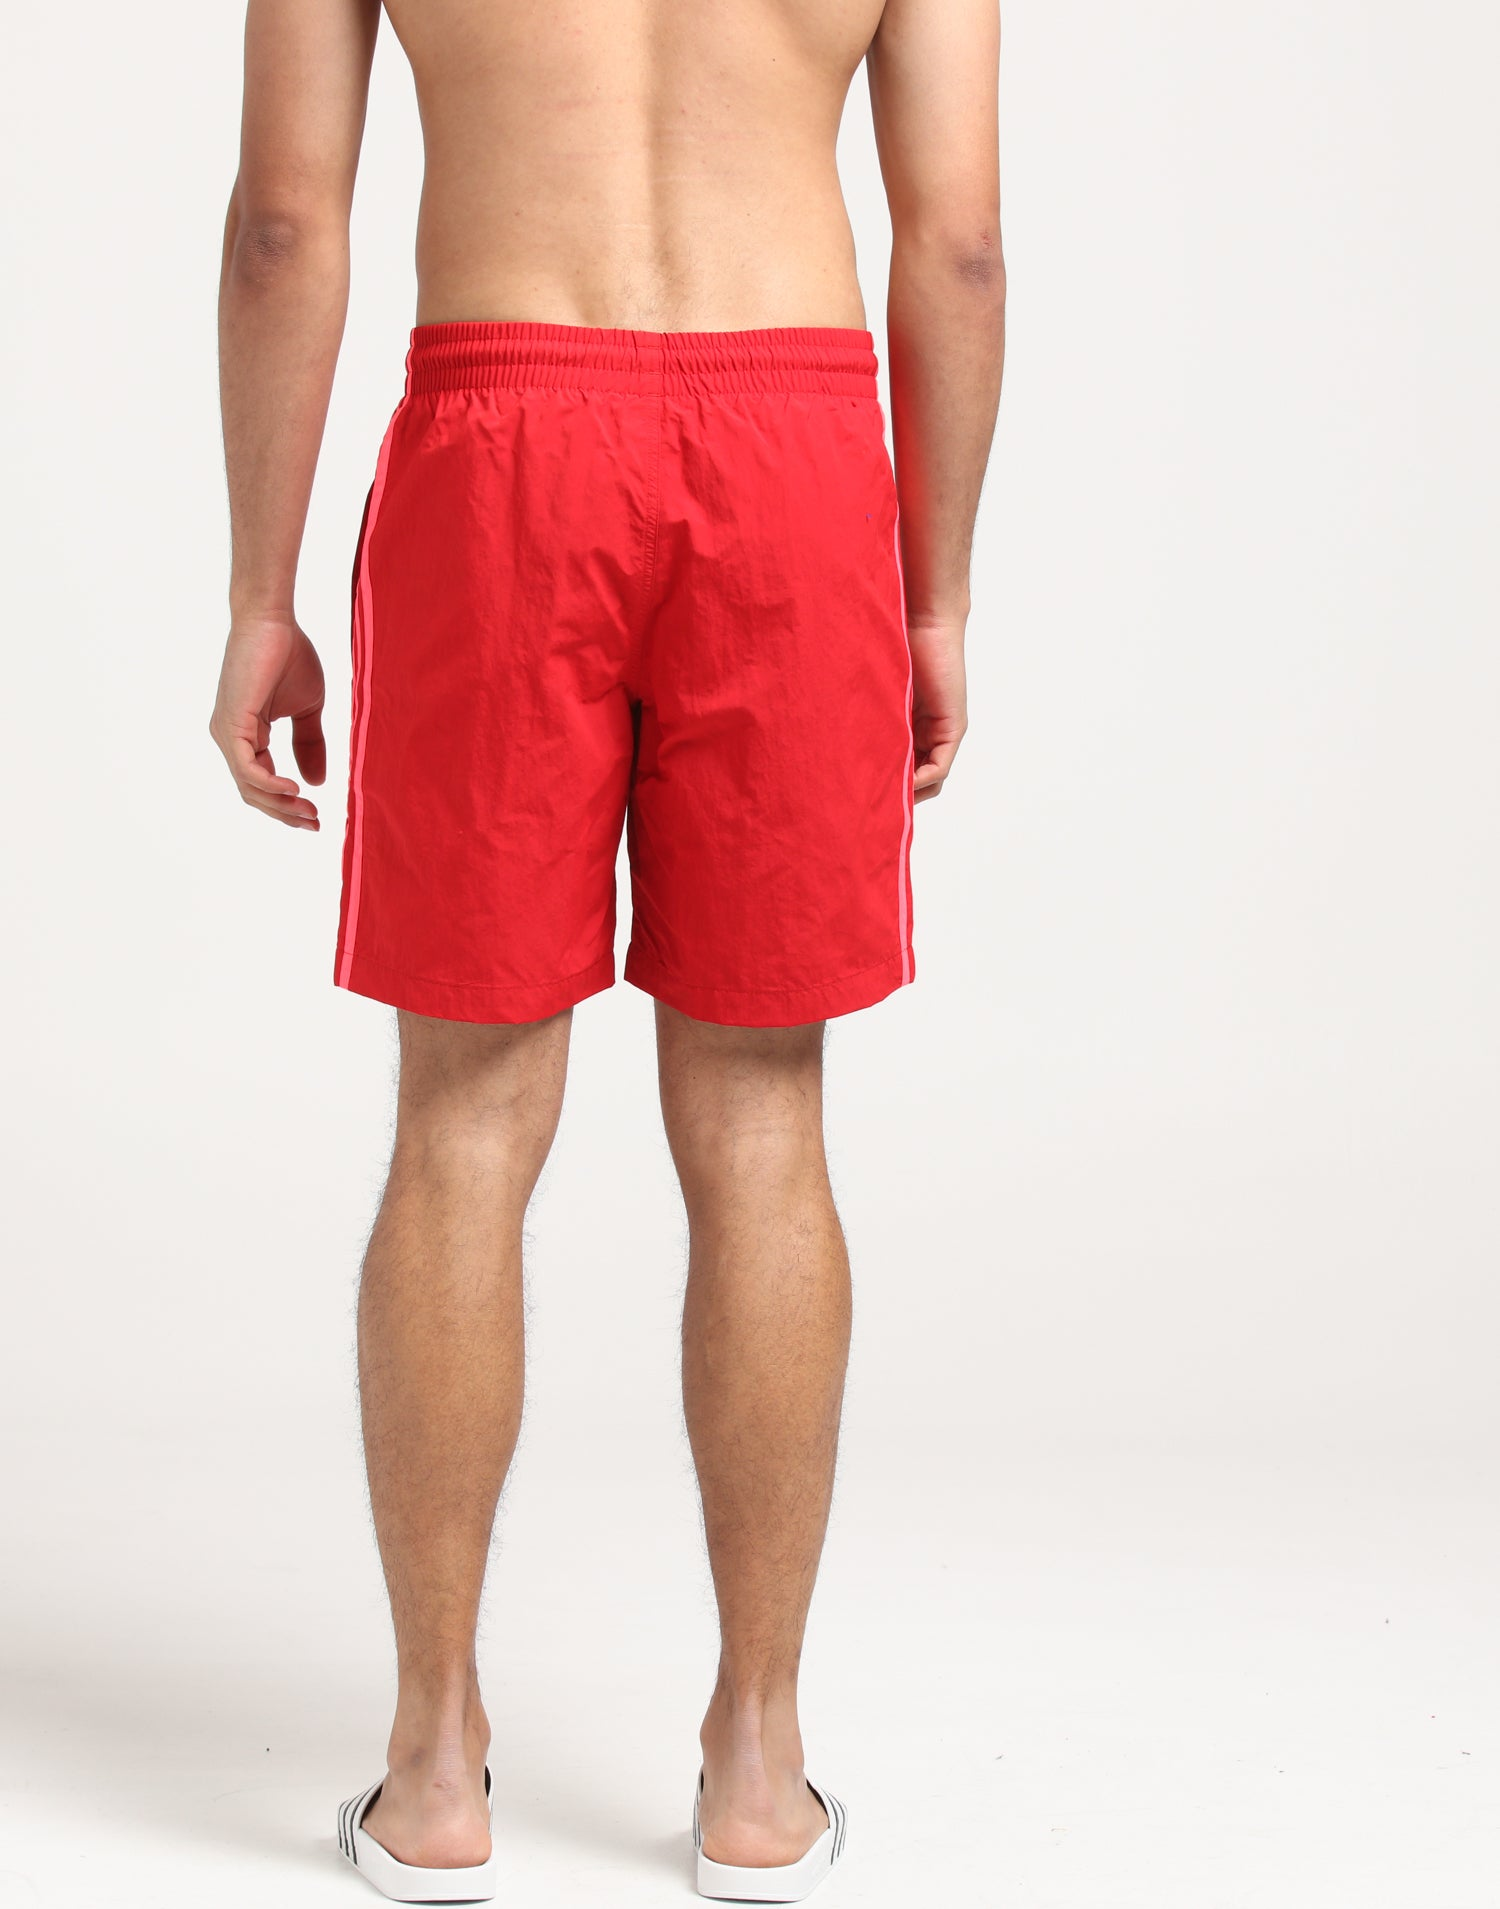 adidas 3 stripes swim shorts